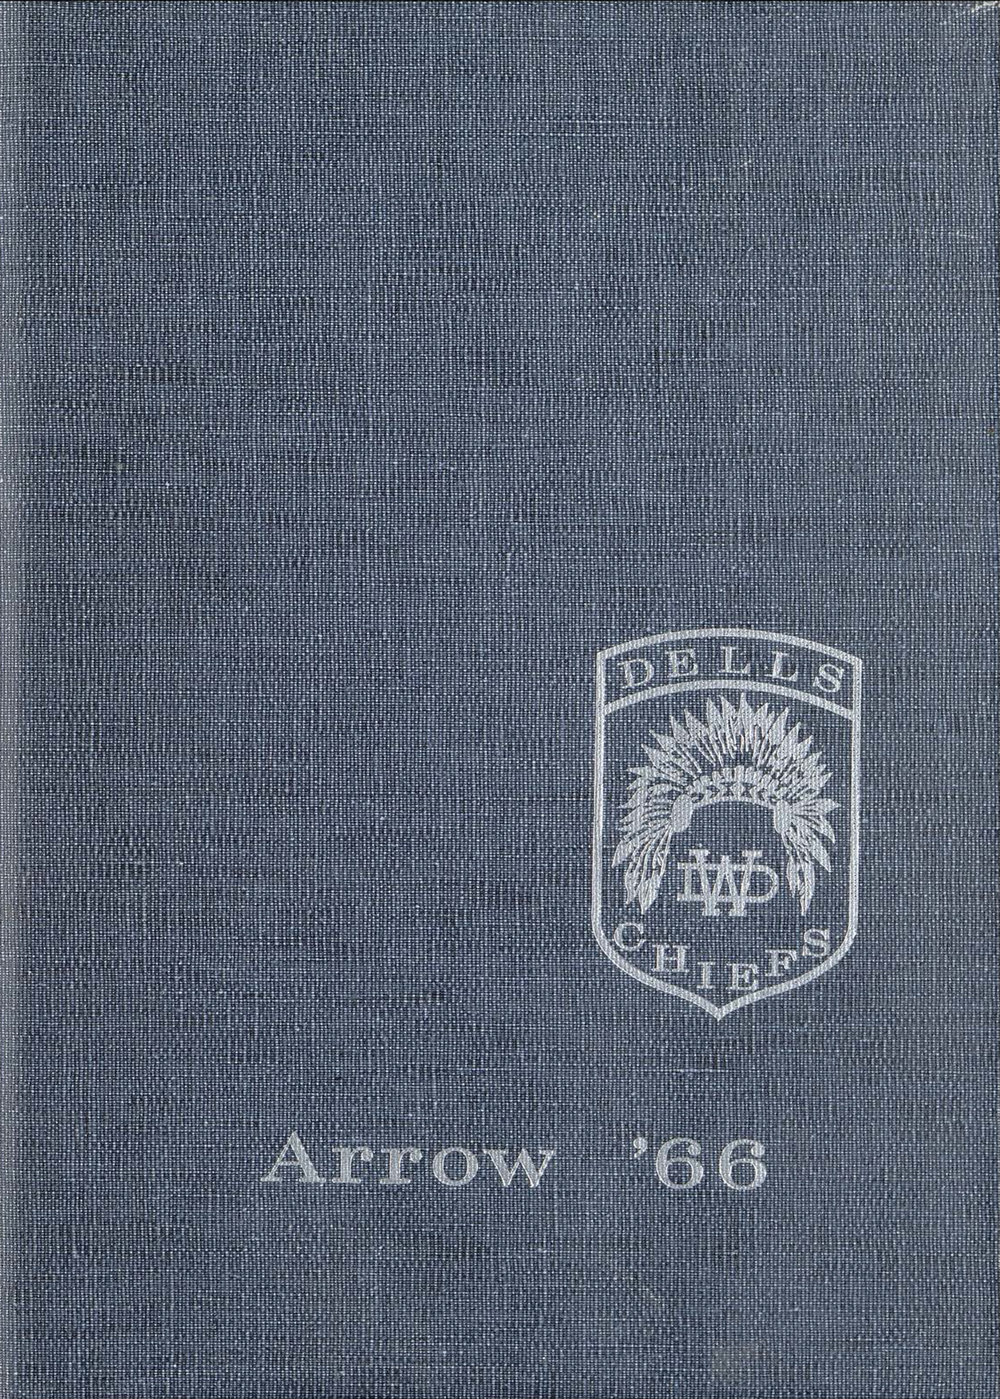 The Arrow 1966